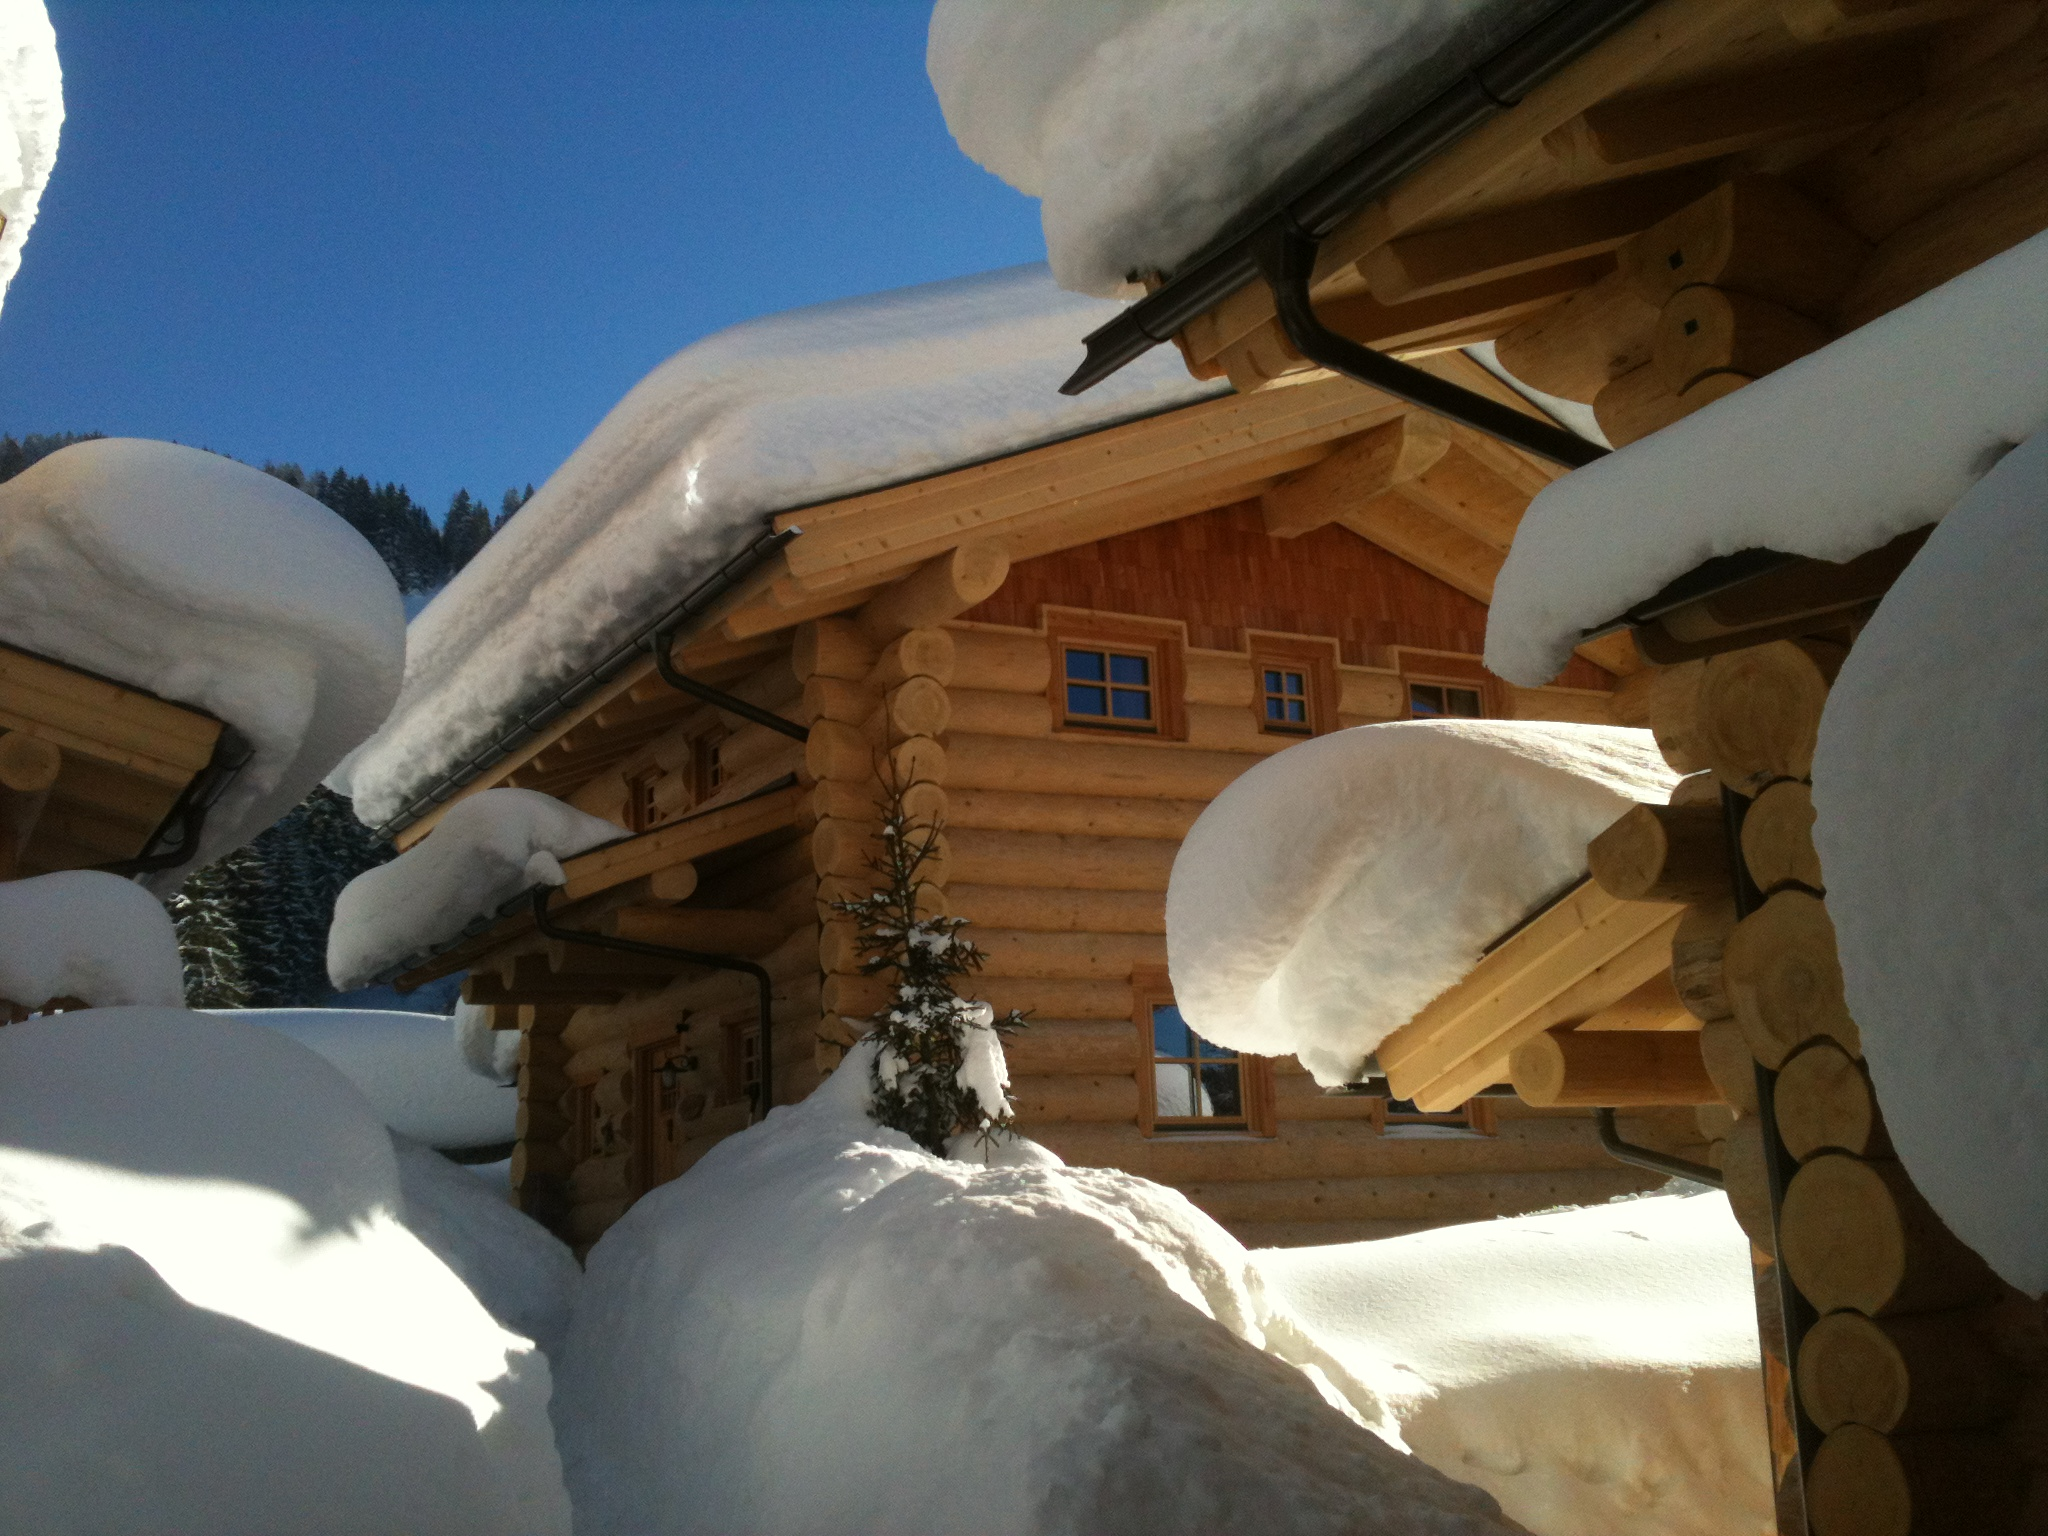 Luxus Chalet im Winter